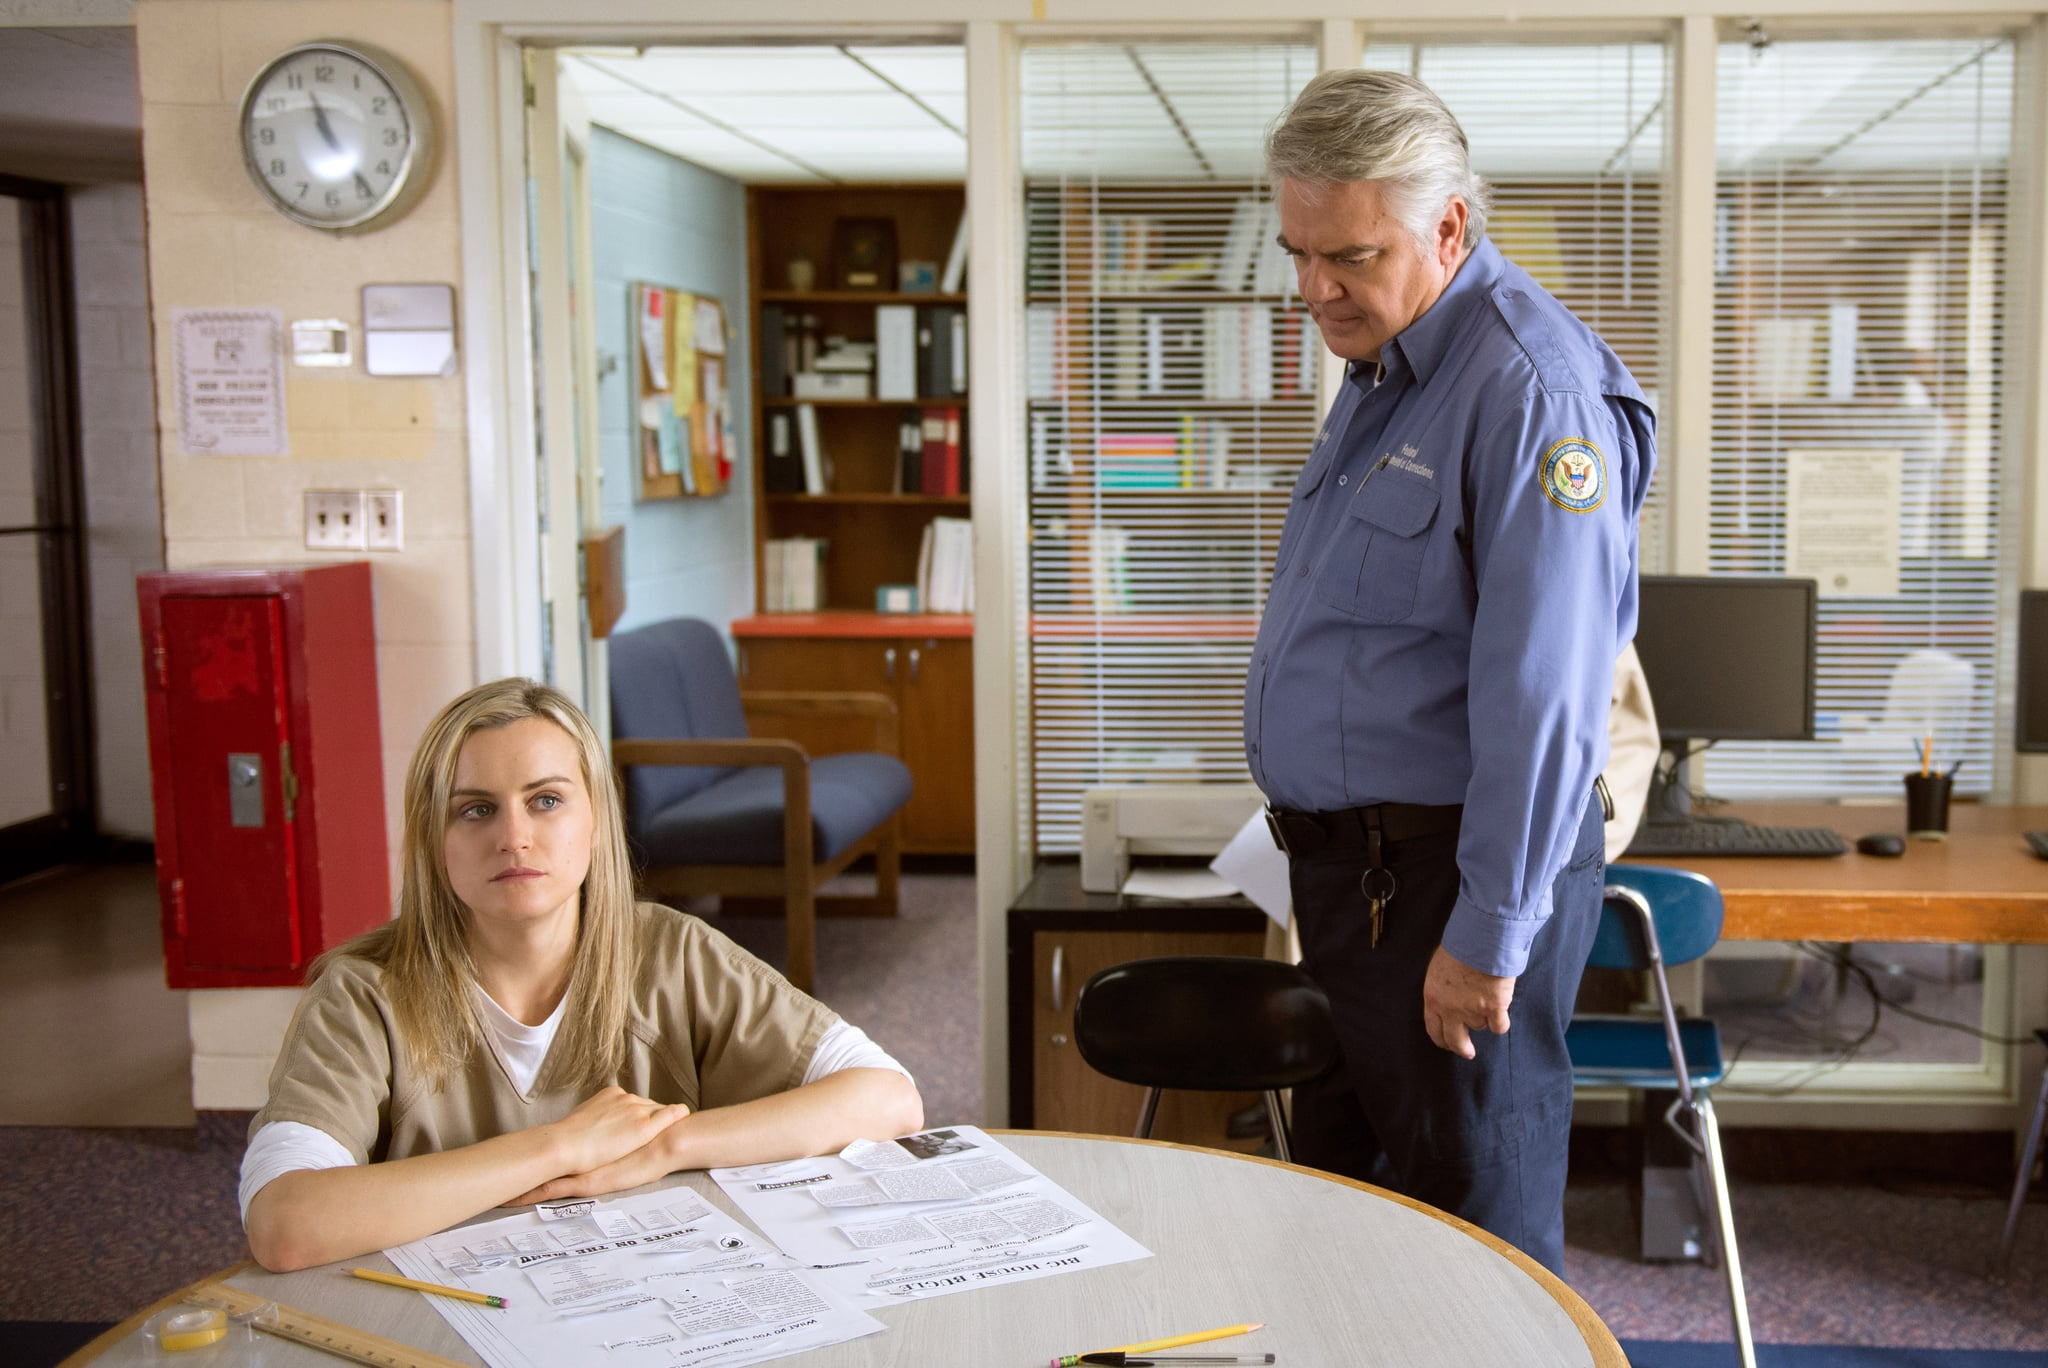 ORANGE IS THE NEW BLACK, (from left): Taylor Schilling, Michael Harney, (Season 2, aired June 6, 2014). photo: Ali Goldstein / Netflix / courtesy Everett Collection